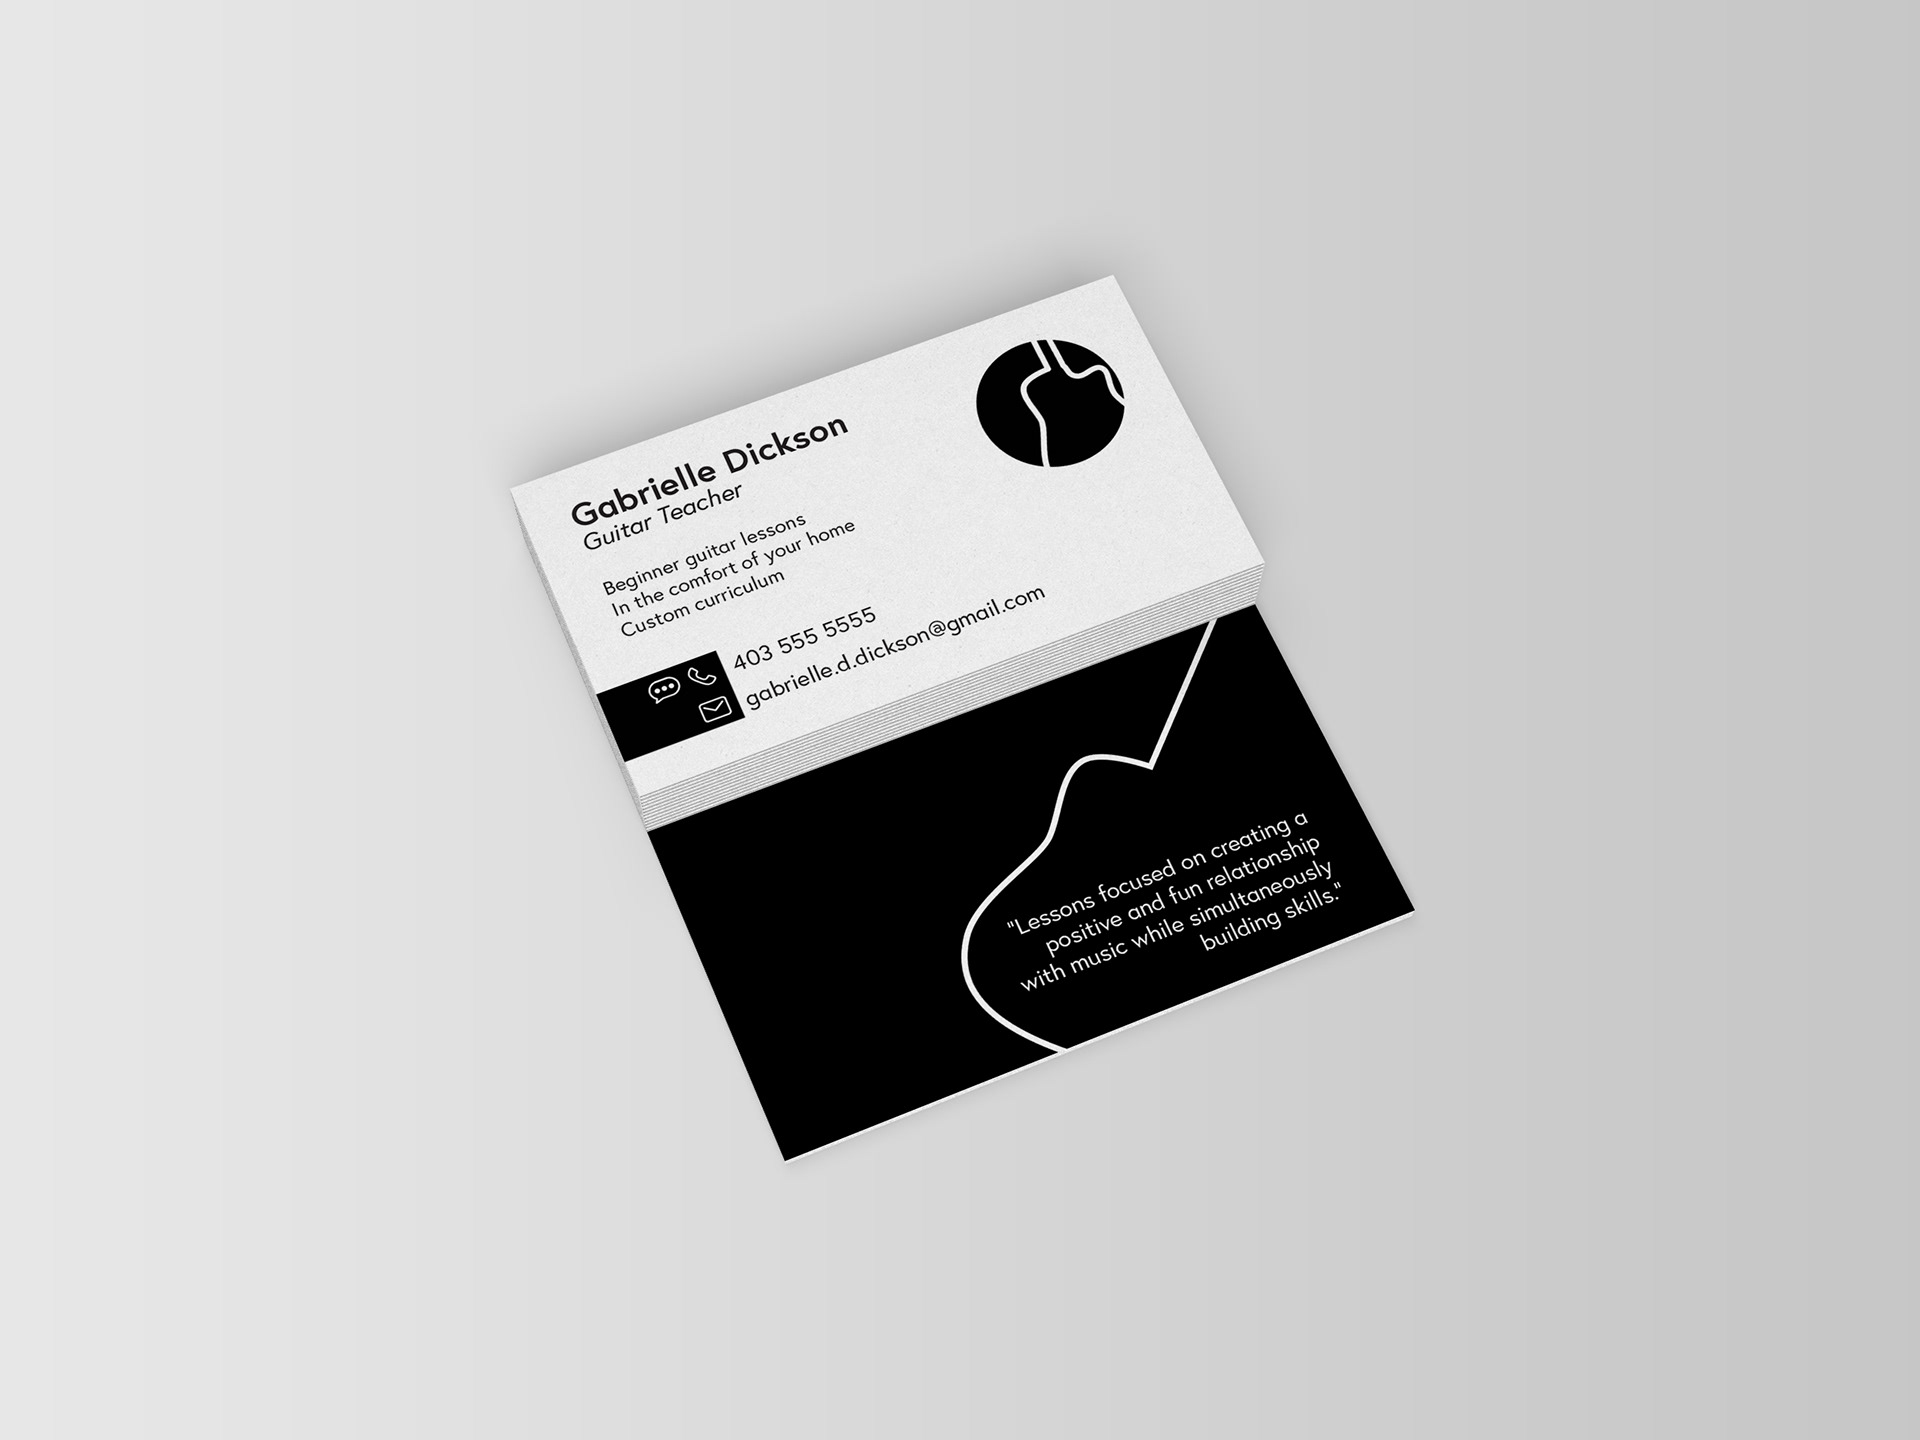 Gabrielle dickson guitar lessons business cards skills graphic design software adobe illustrator project type personal project year 2017 reheart Gallery